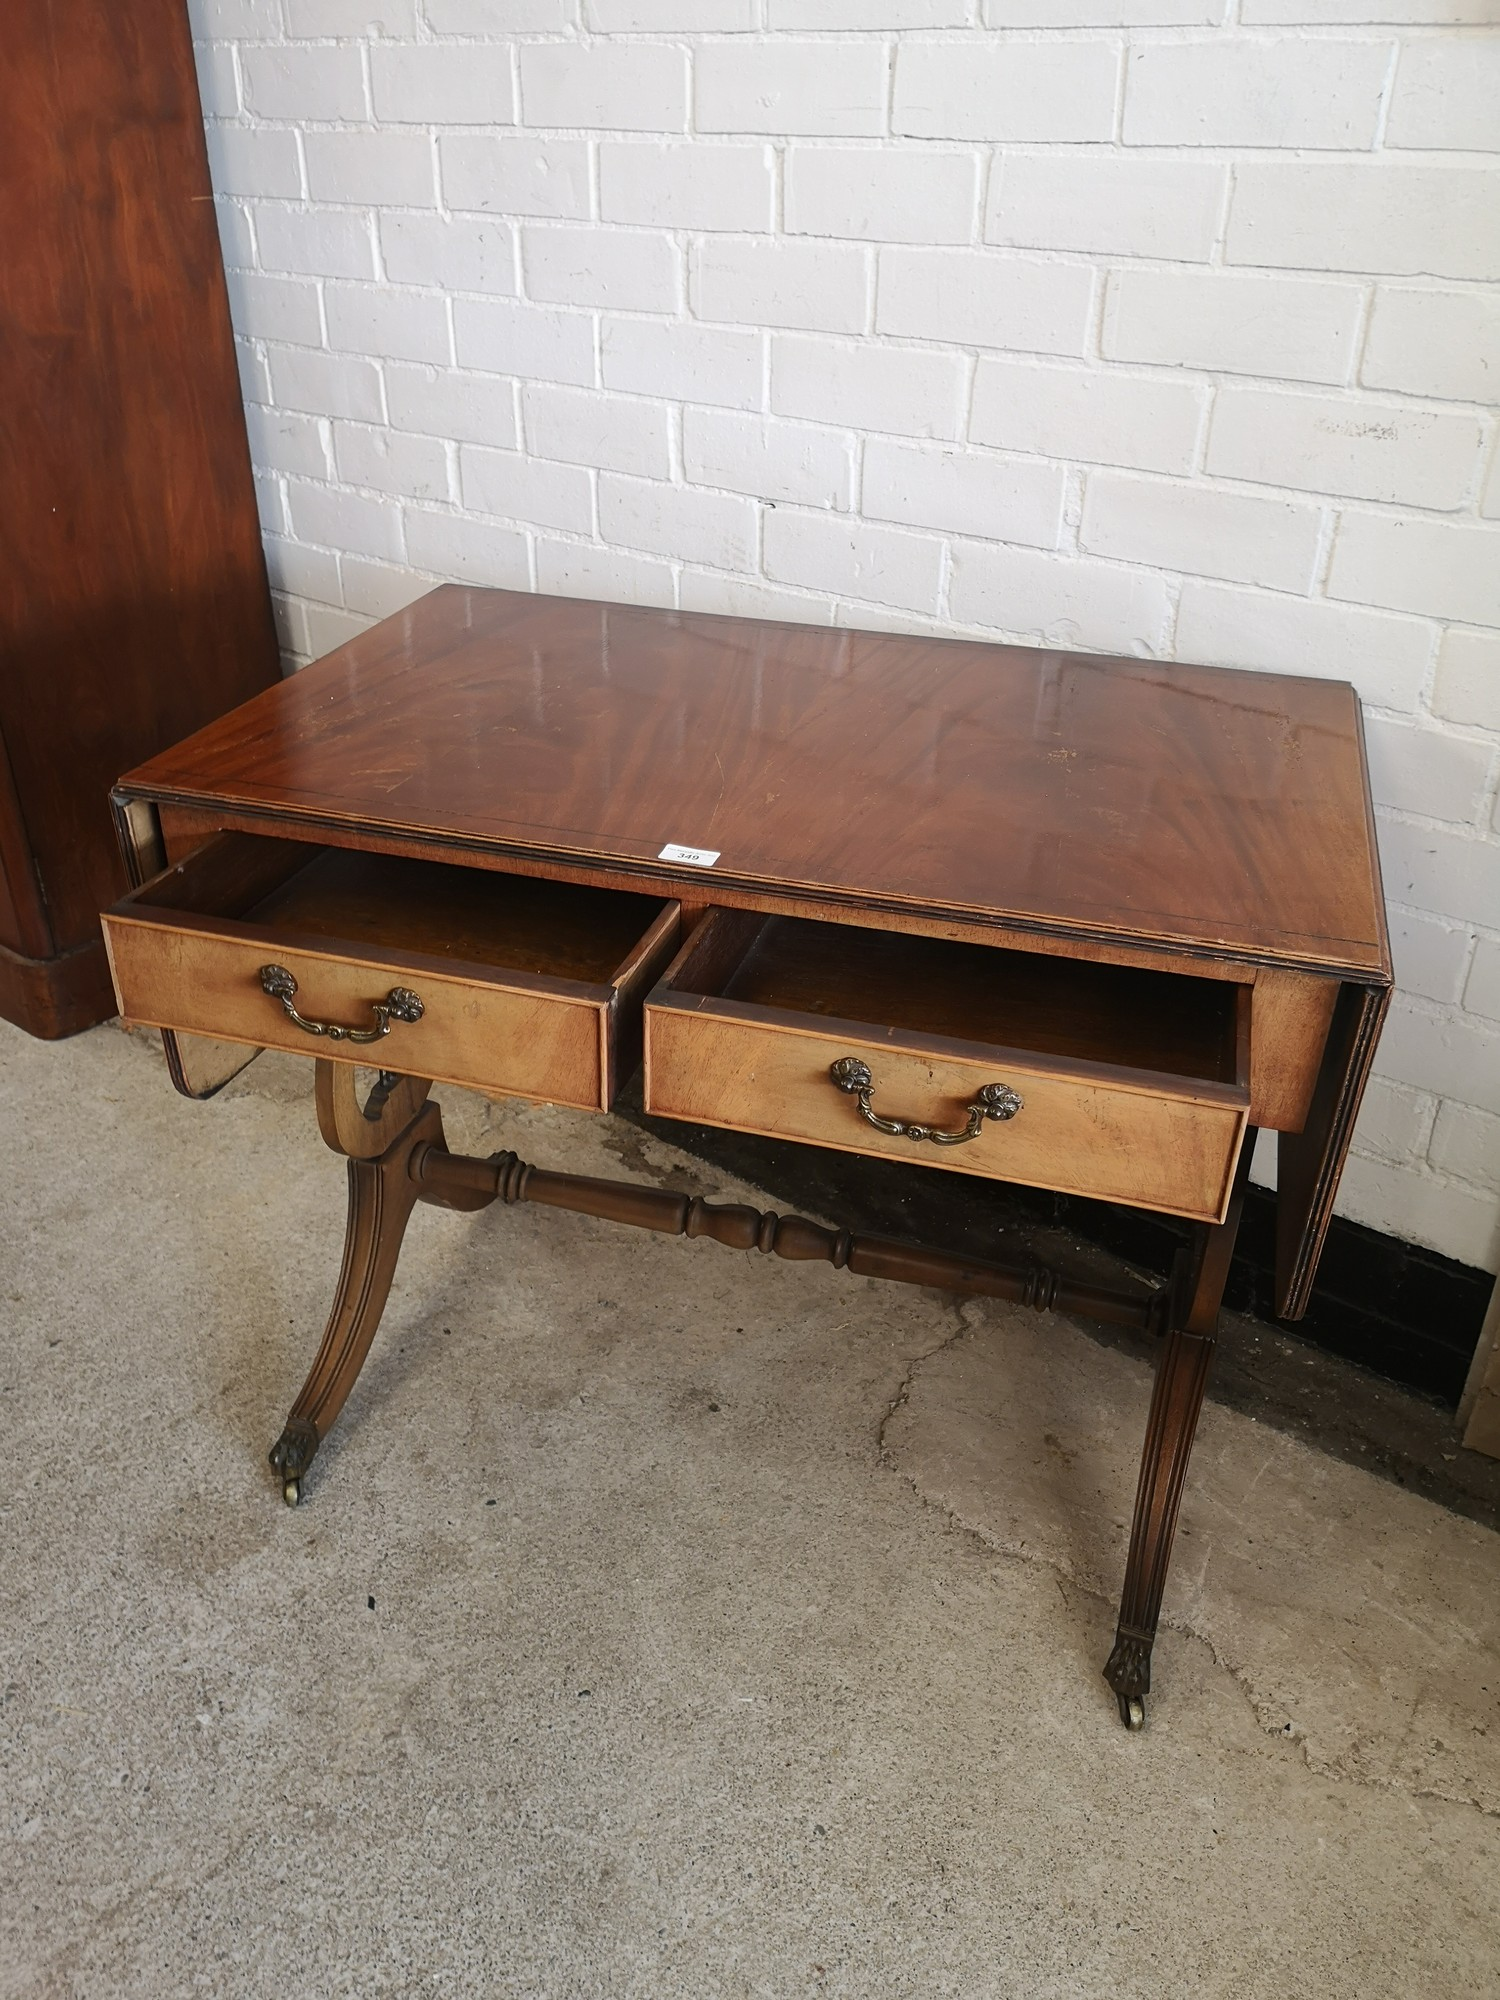 Reproduction drop leaf liar end table with 2 drawers. 5ft extended out with leafs in length. - Image 3 of 7